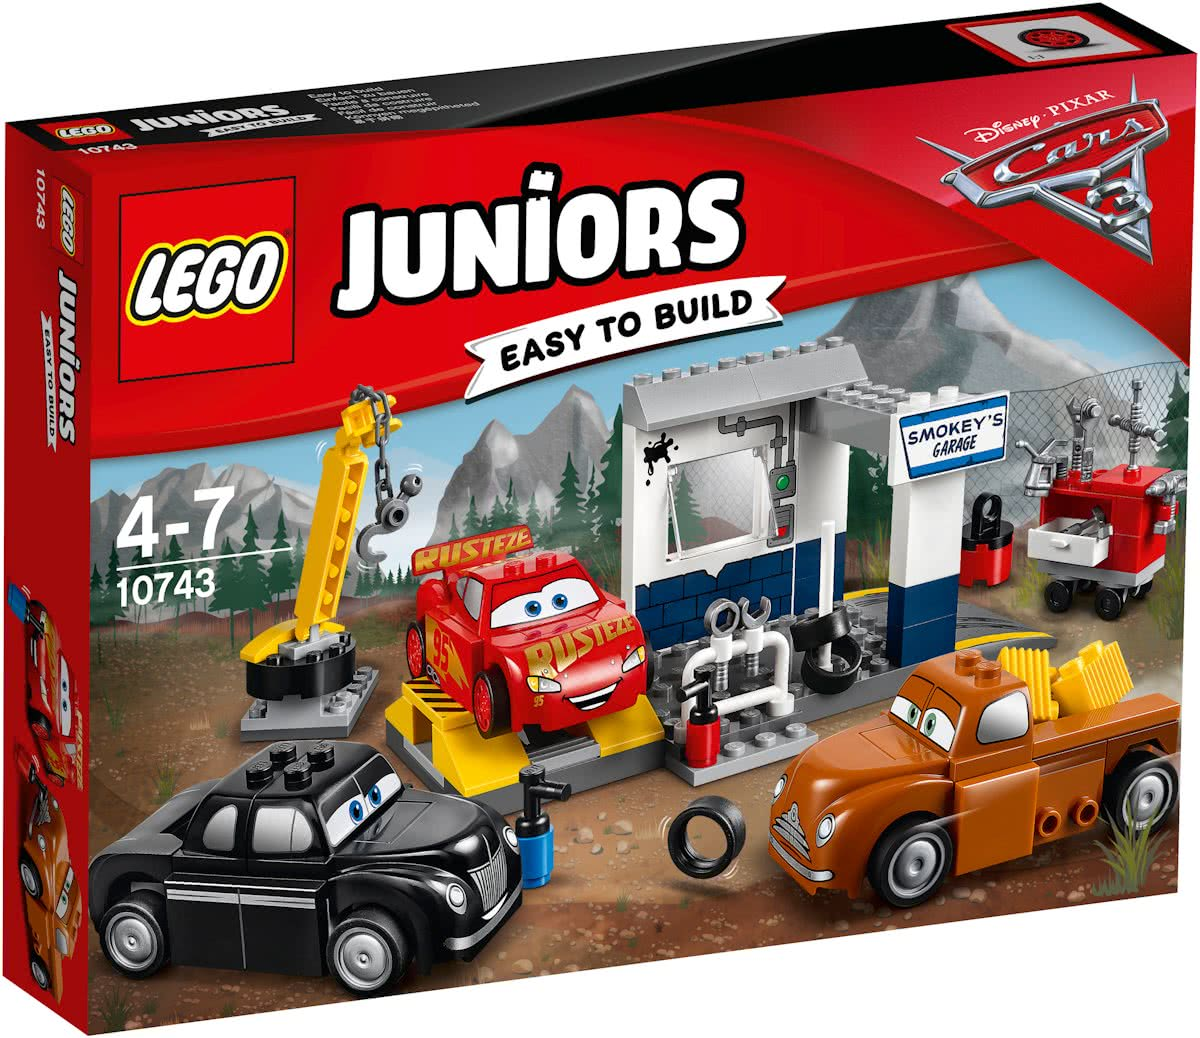 10743 LEGO Juniors Cars 3 Smokeys Garage